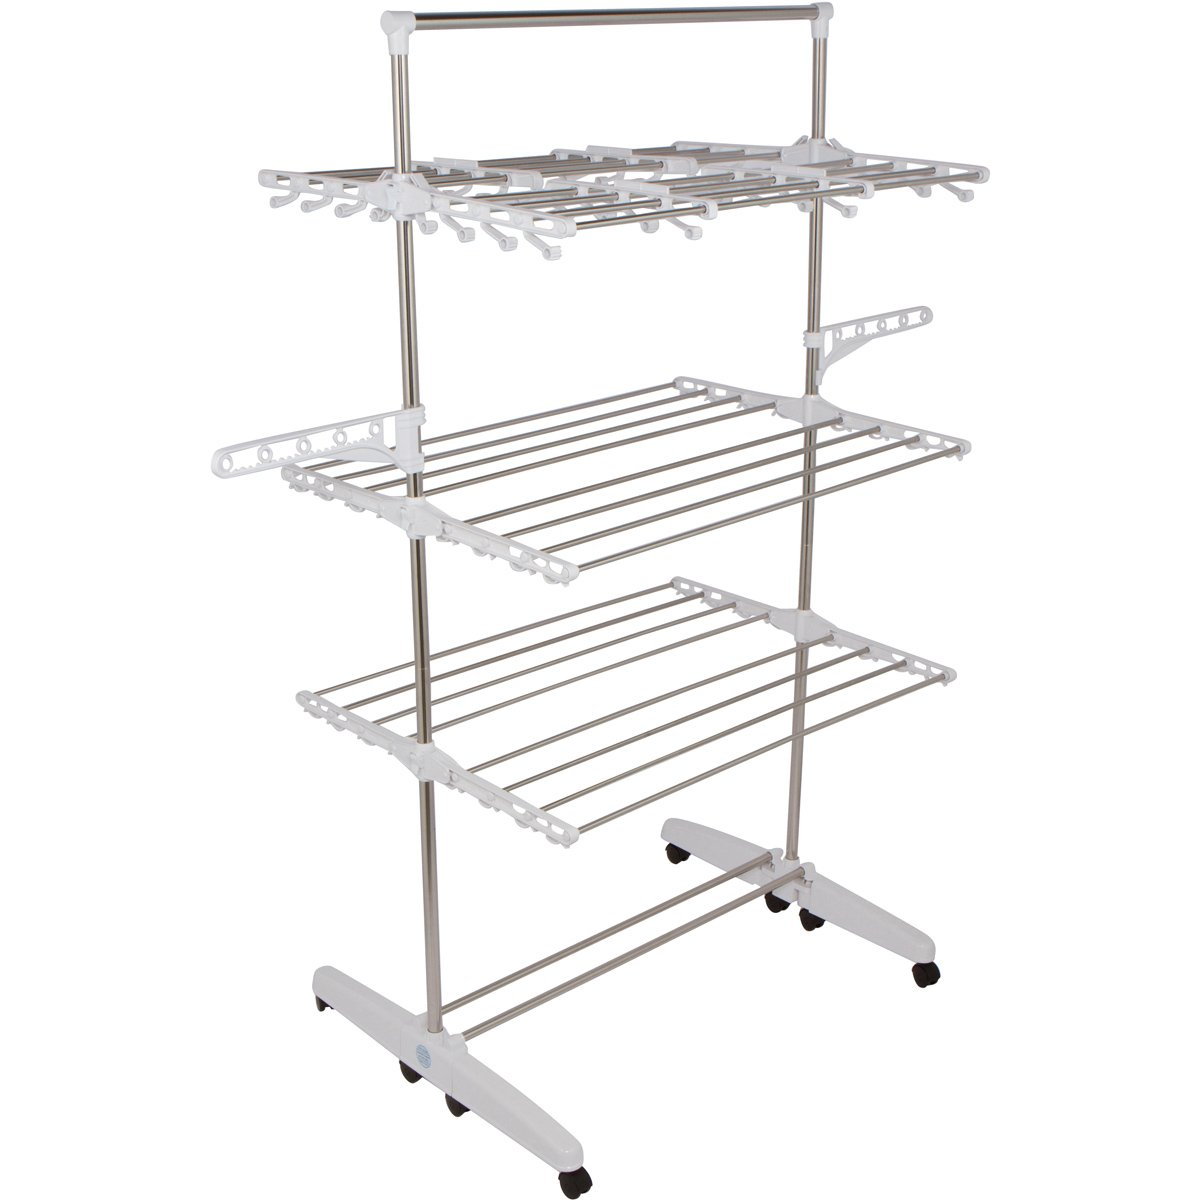 !iT Jeans High Capacity 3-Tier Premium Foldable Clothes Drying Rack - Stainless Steel - 8 Wheels- Heavy Duty Large Size - Indoor & Outdoor (Blue) GR2B